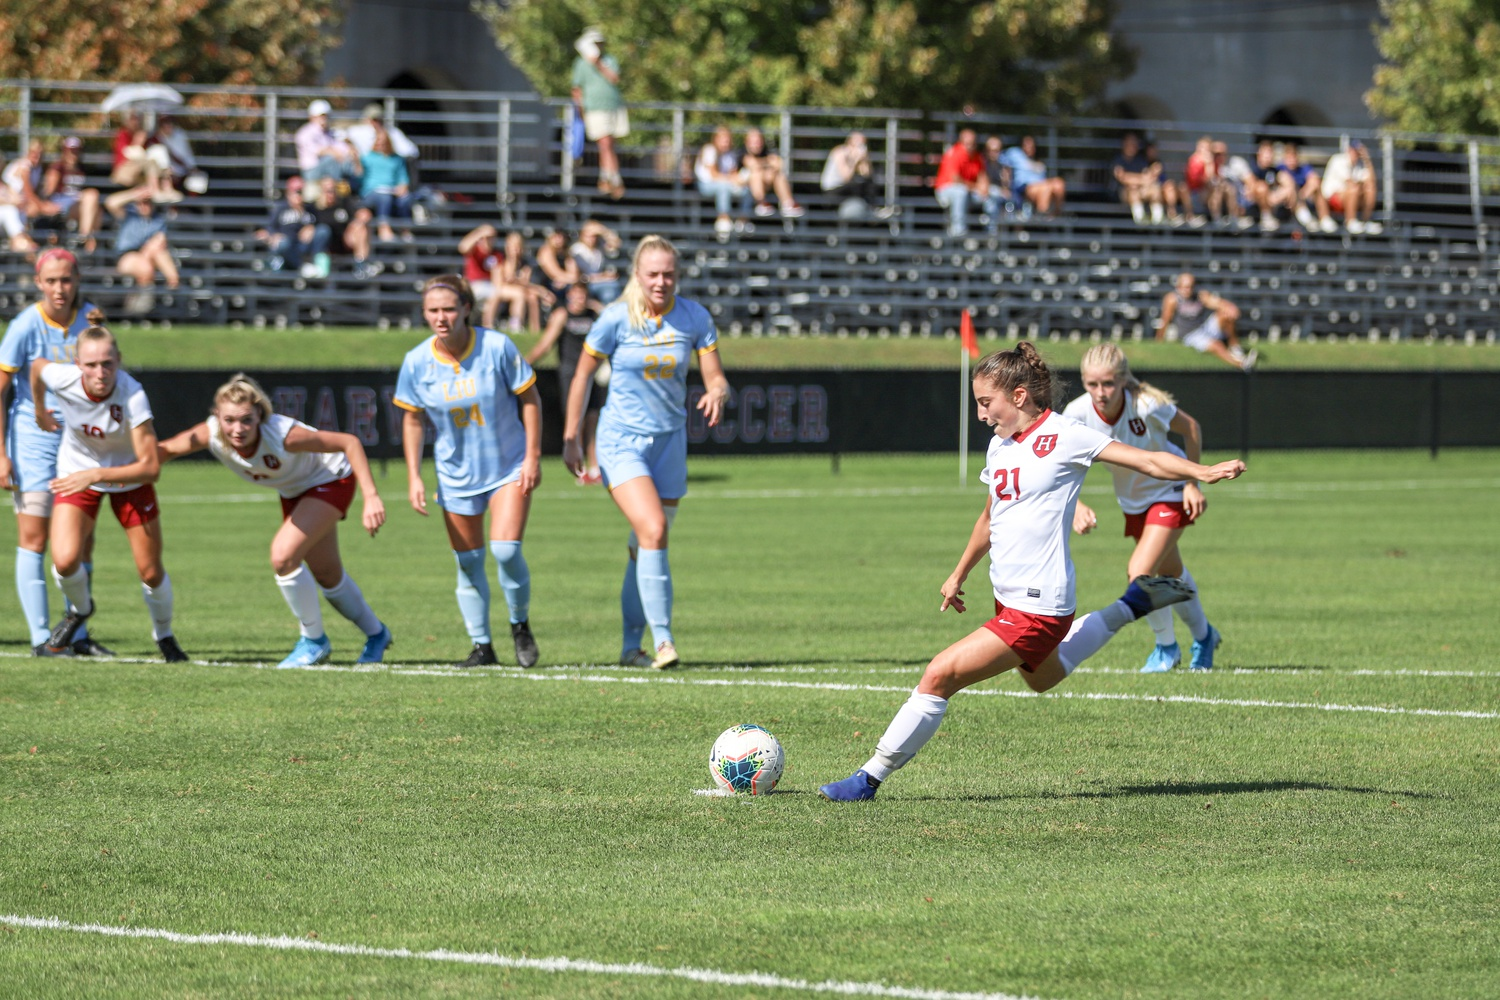 The Crimson cruised to a weekend win over LIU.